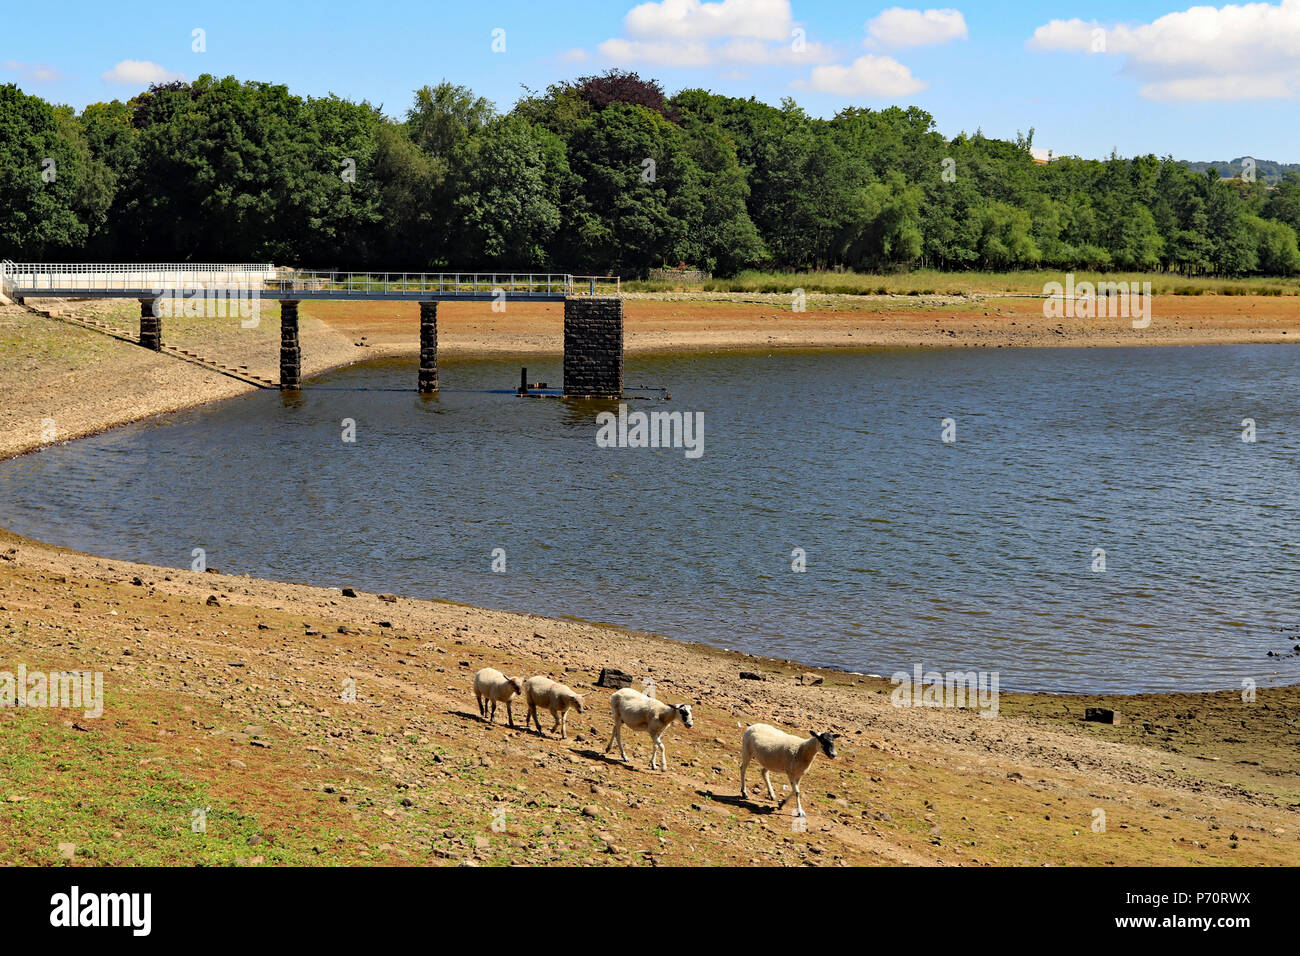 Foulridge upper reservoir on the morning of Tuesday 3.7.18 showing the low water levels and some of the local sheep having a wander round. - Stock Image